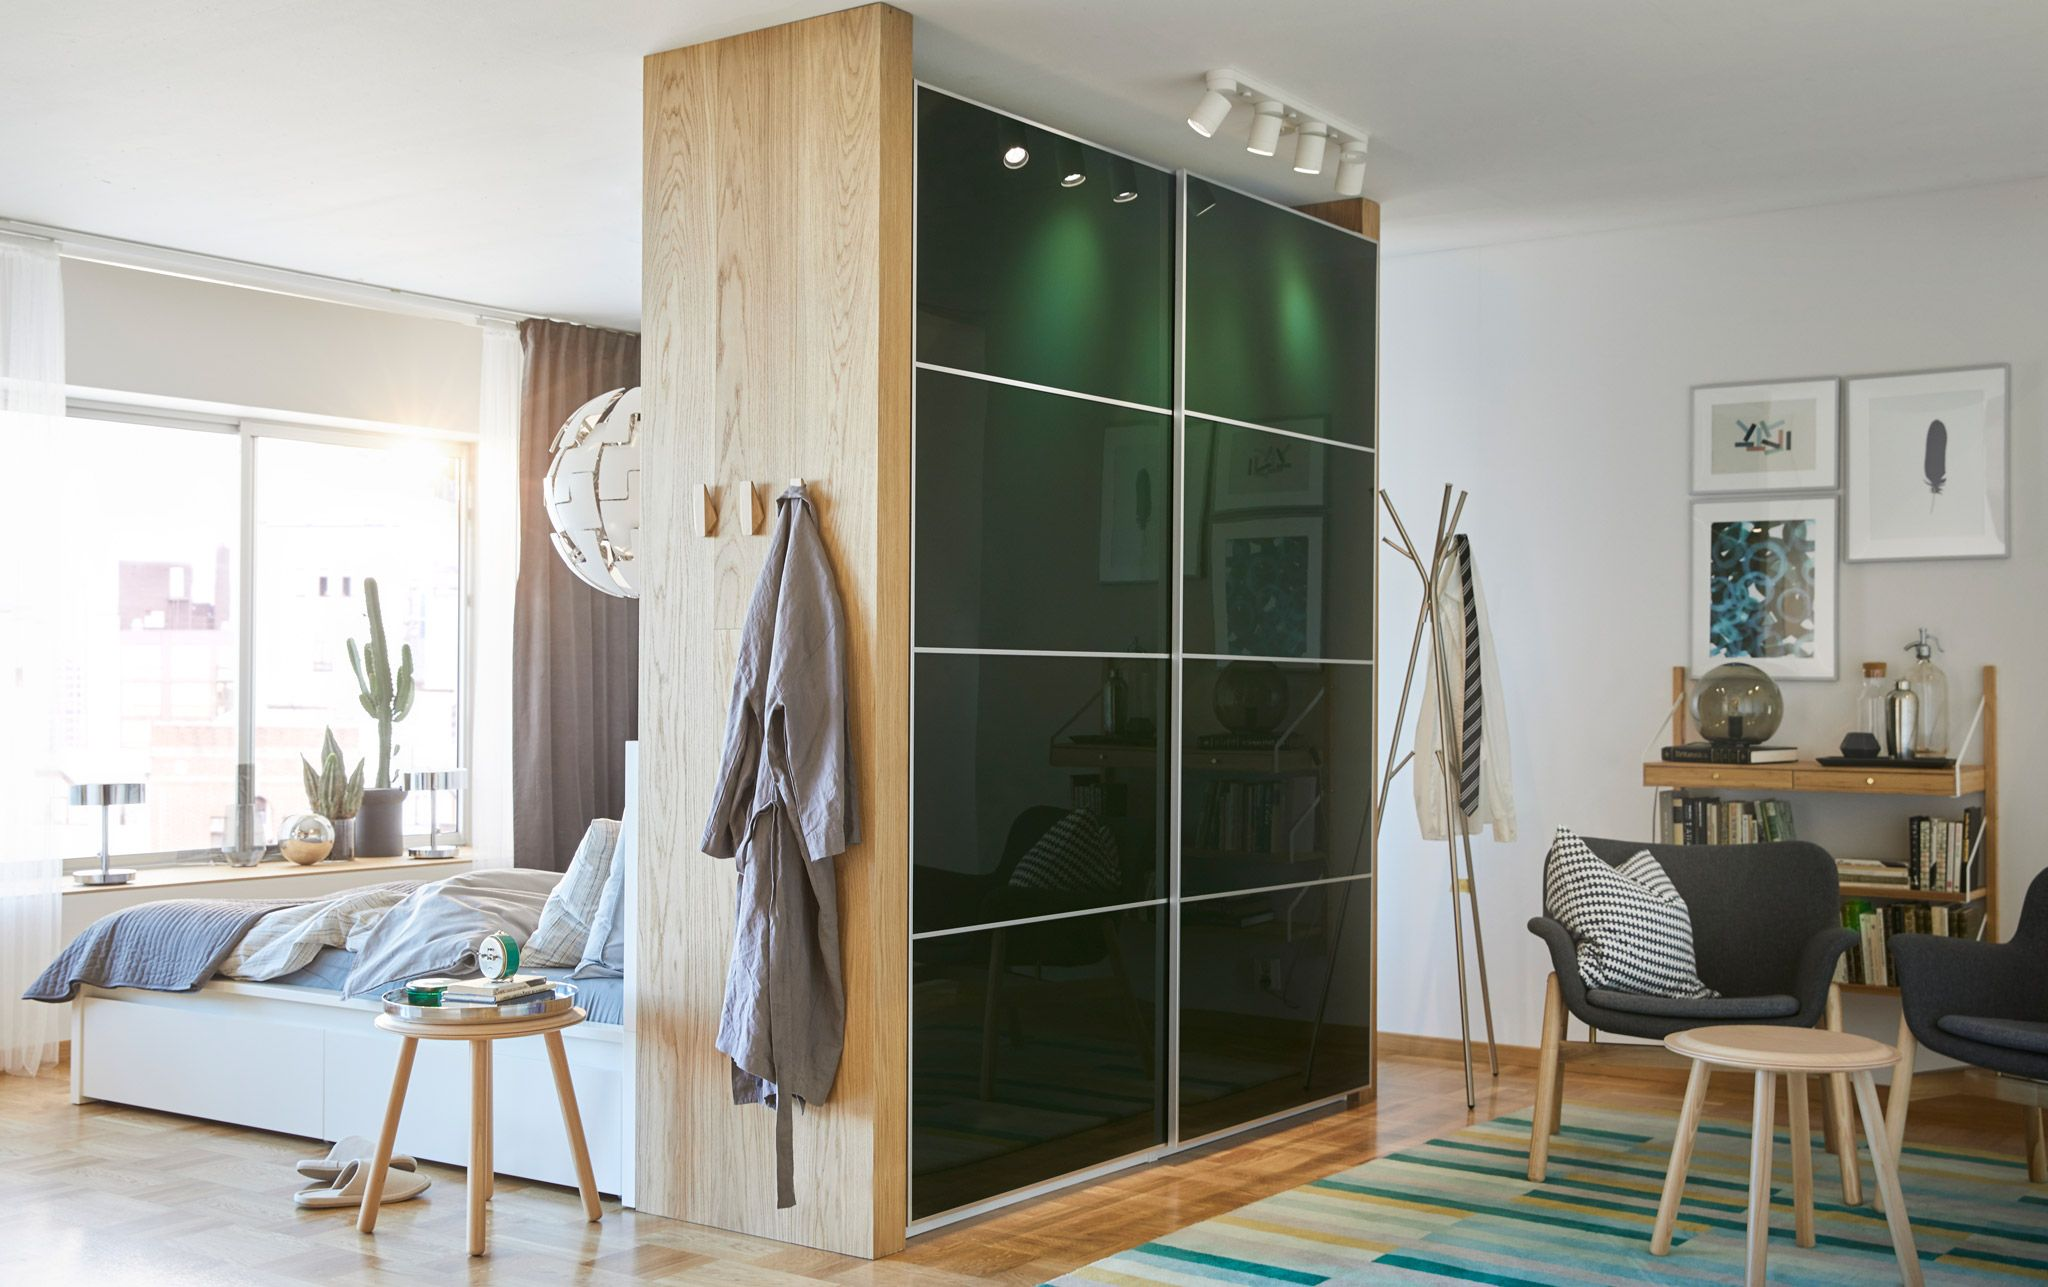 8 Storage Ideas For Your Home Clever Storage Ideas